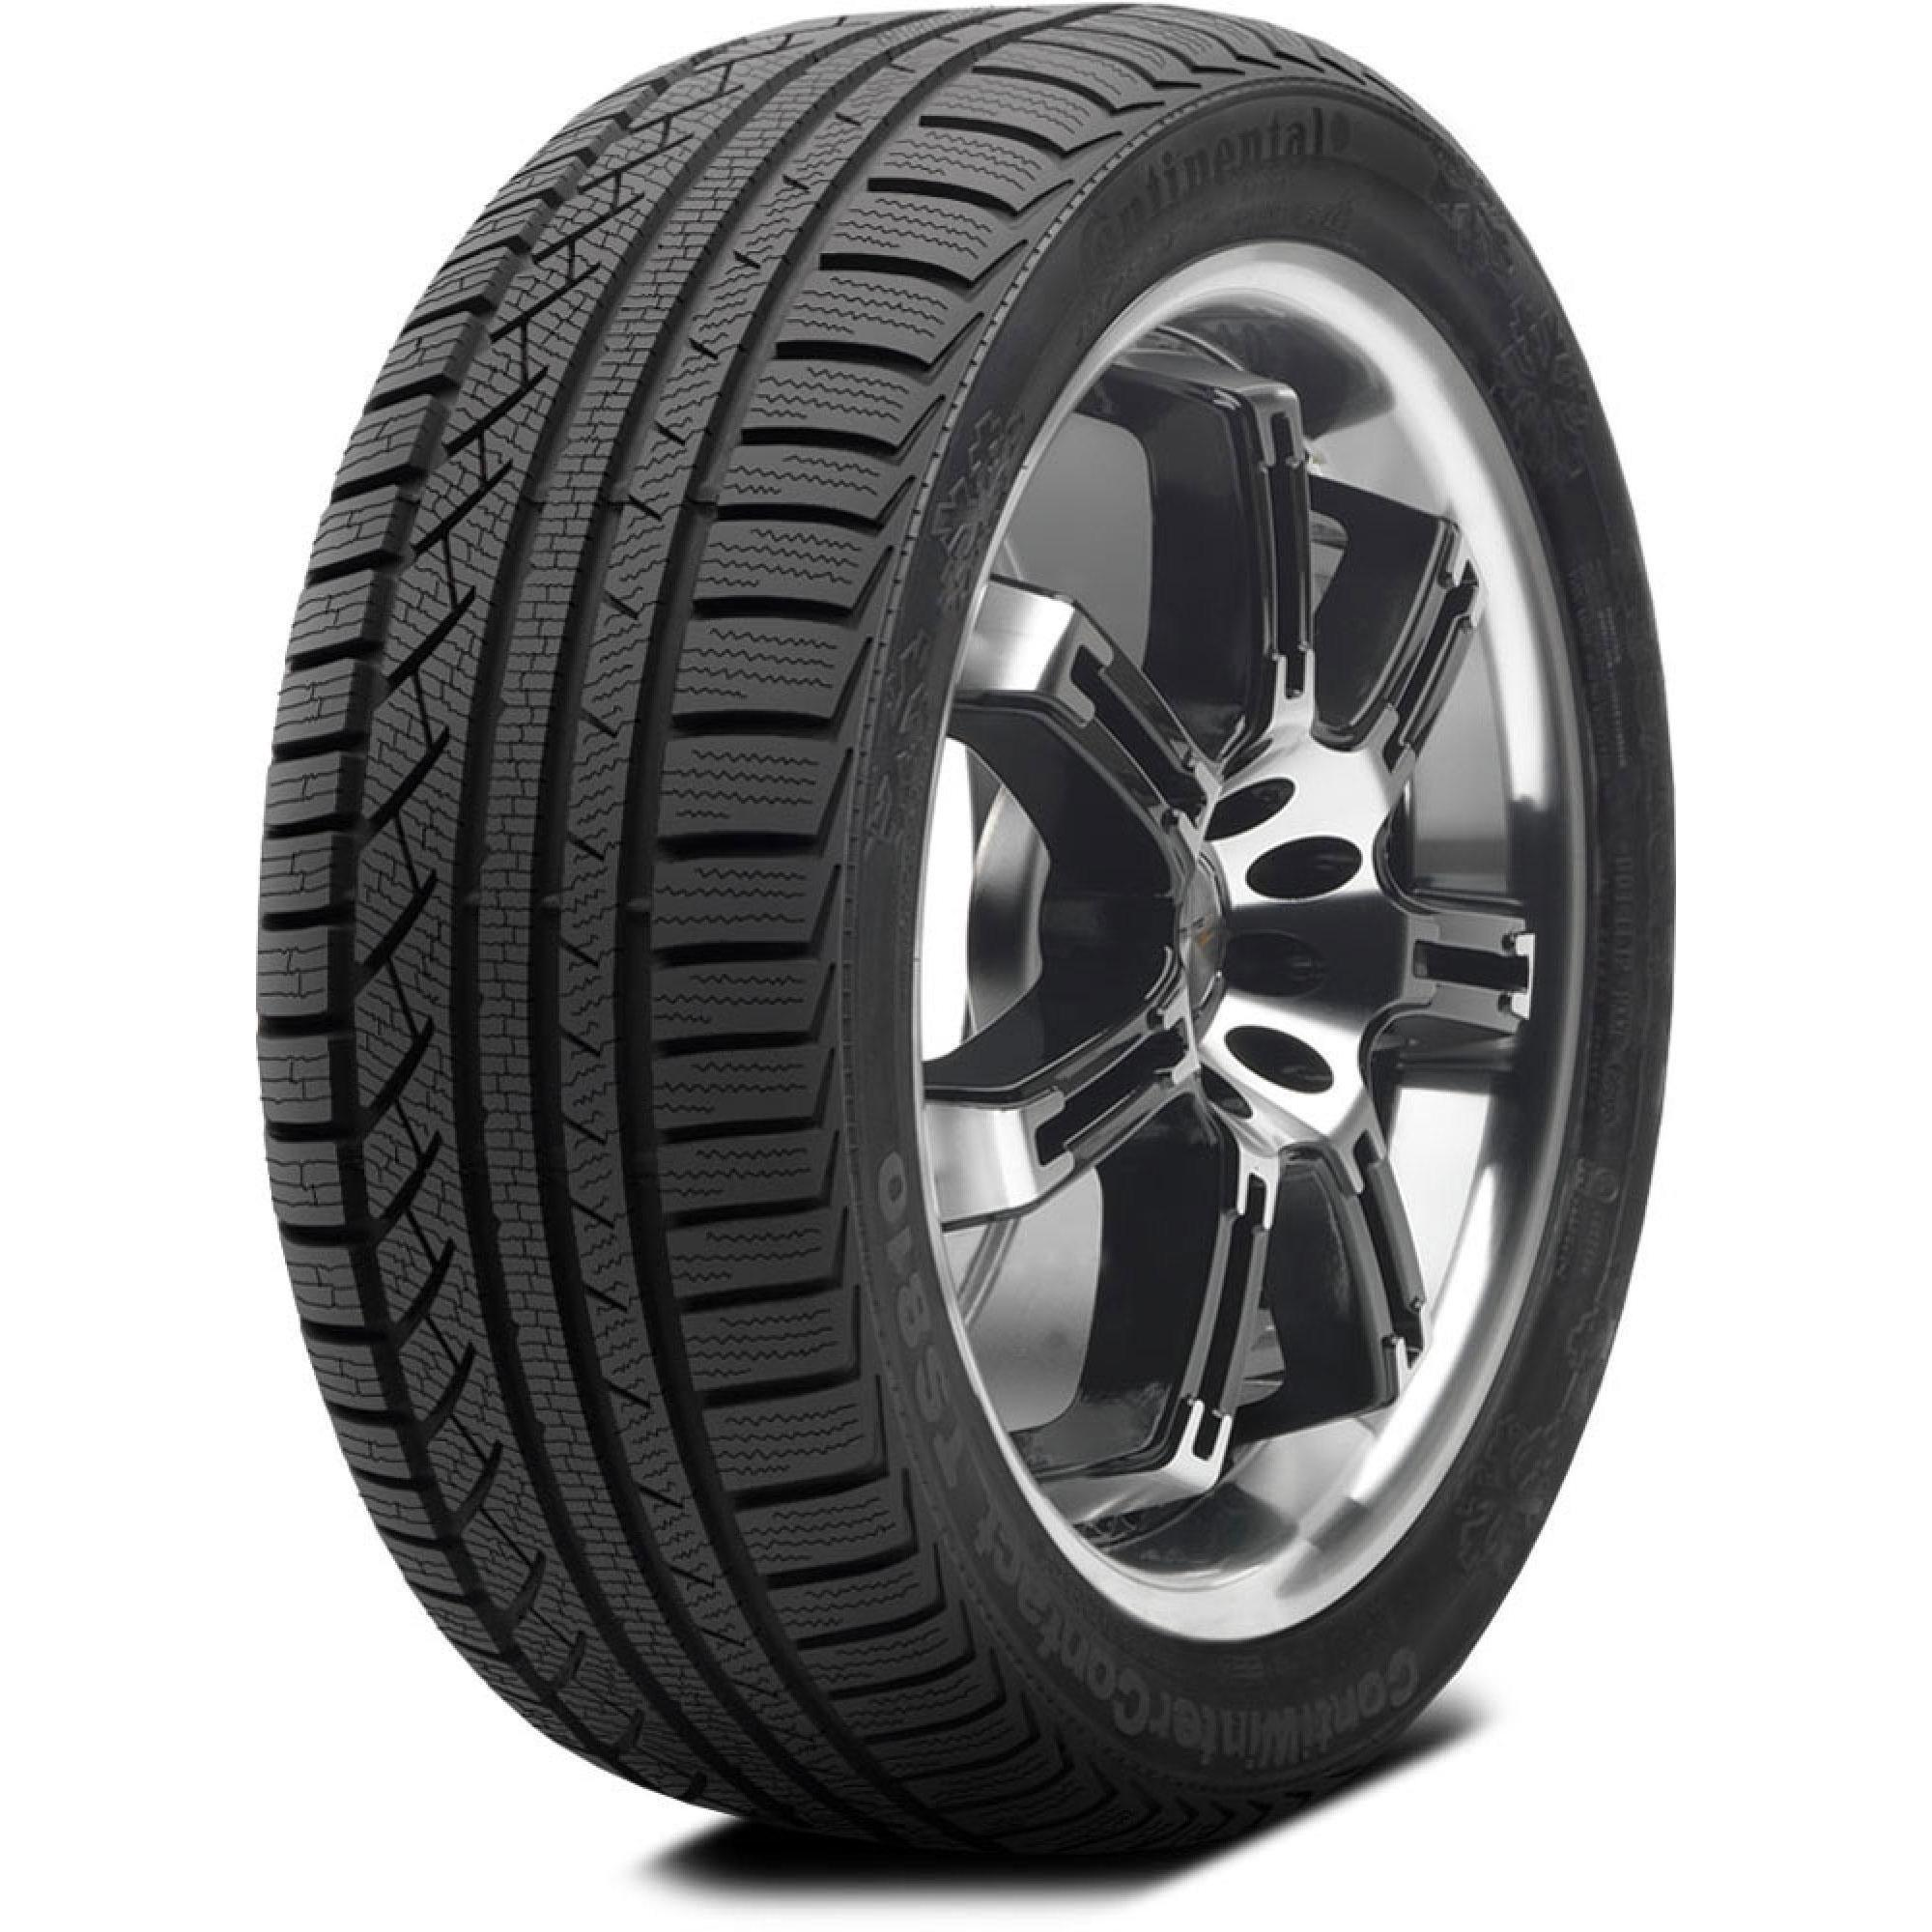 Gomme Nuove Continental 285/40 R19 107V ContiWinterContact TS810S N0 XL (100%) pneumatici nuovi Invernale